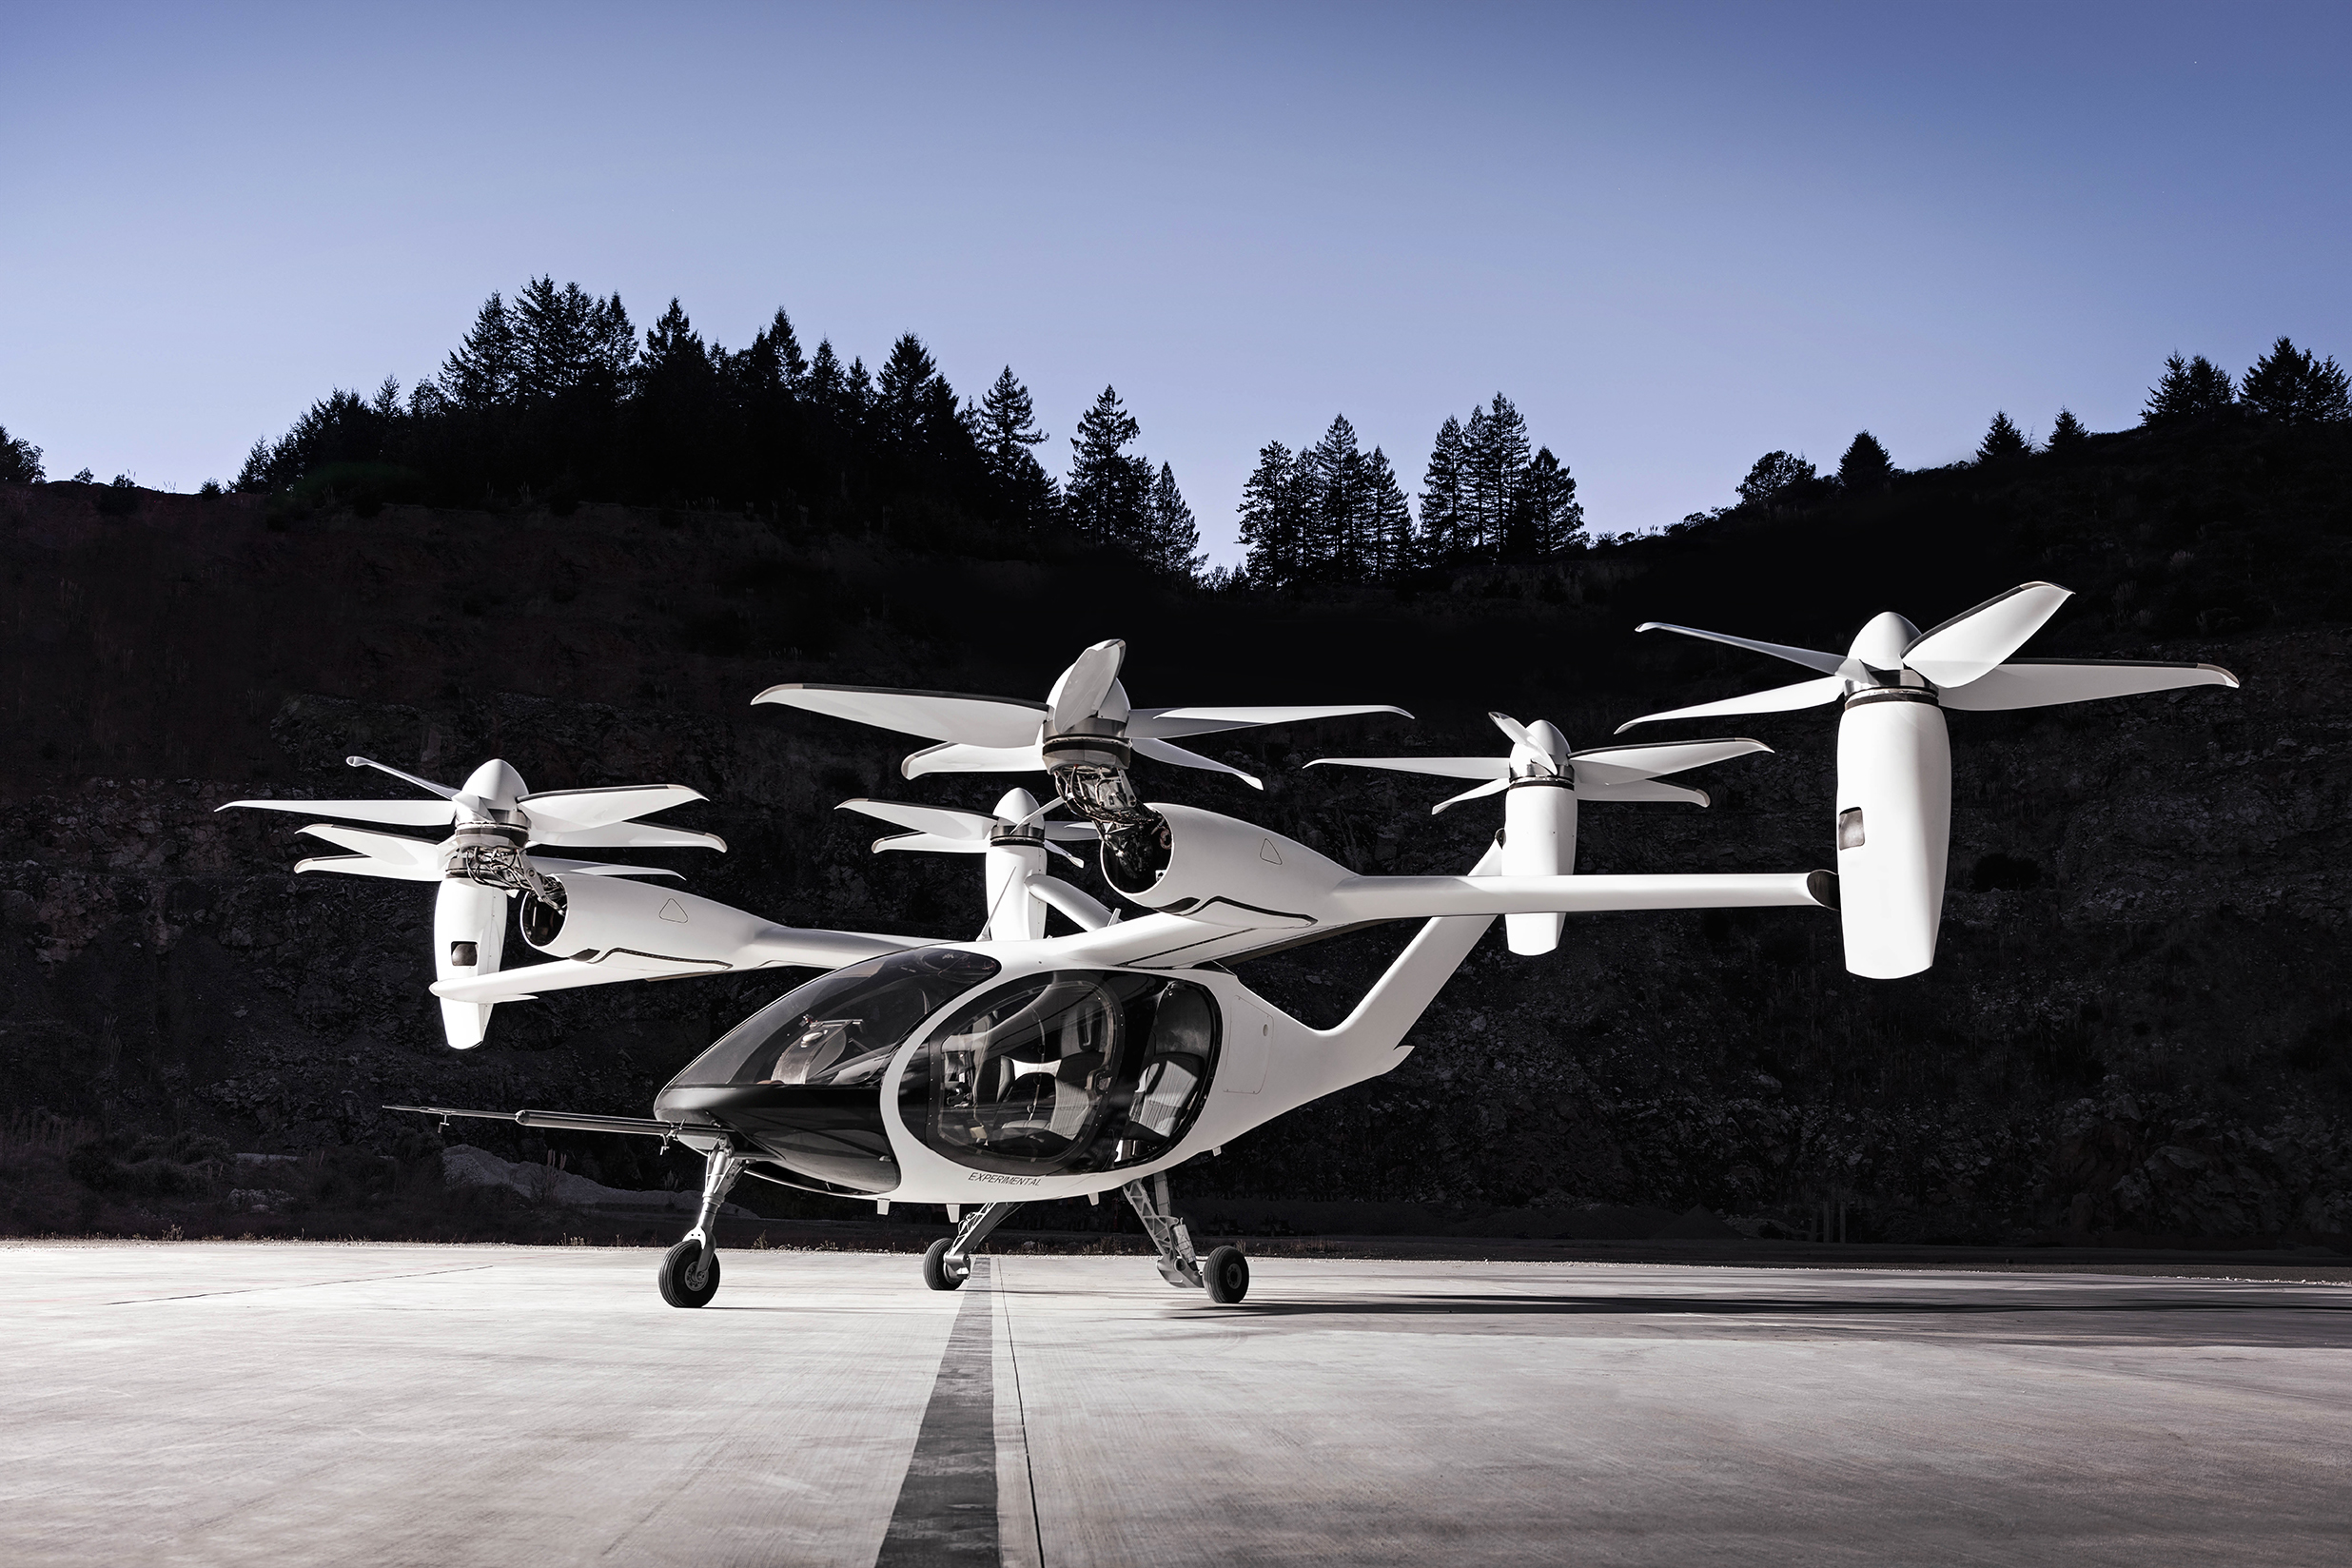 Marine Corps interest in Joby eVTOL